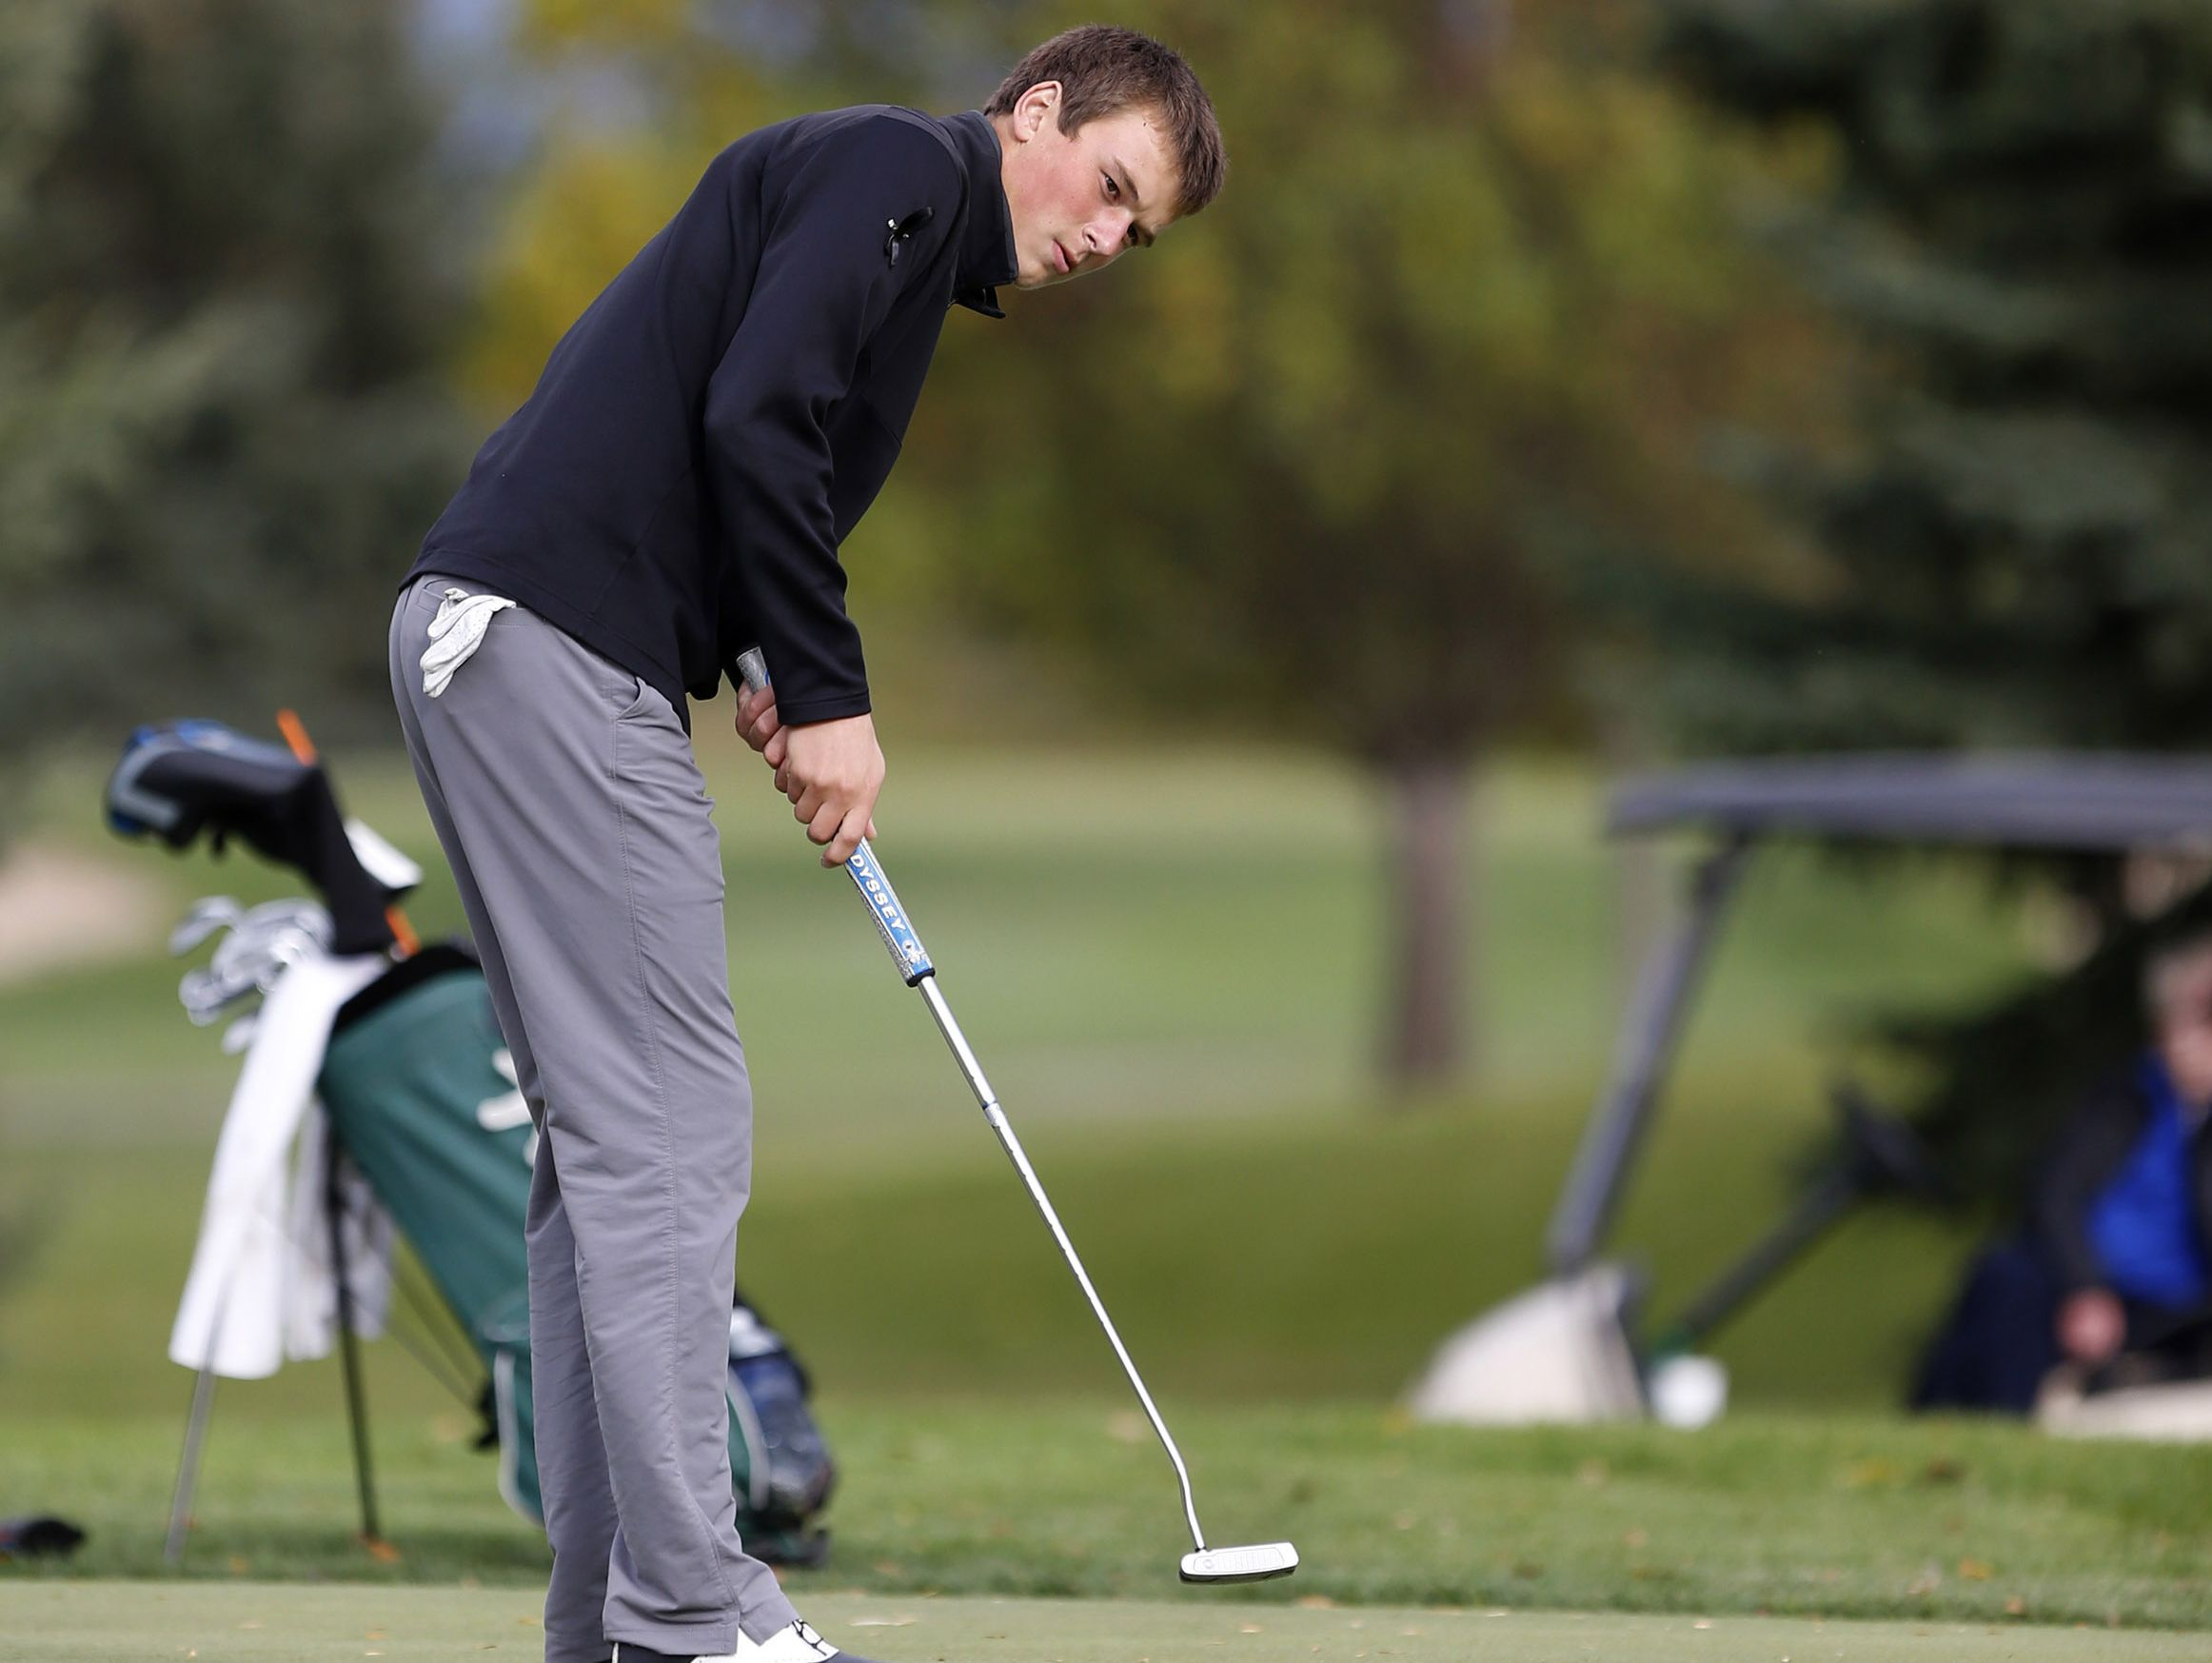 Will Grevlos, of Sioux Falls Washington, watches his putt on the 12th hole at Moccasin Creek Country Club in Aberdeen during Tuesday's round of the South Dakota Class AA golf tournament.